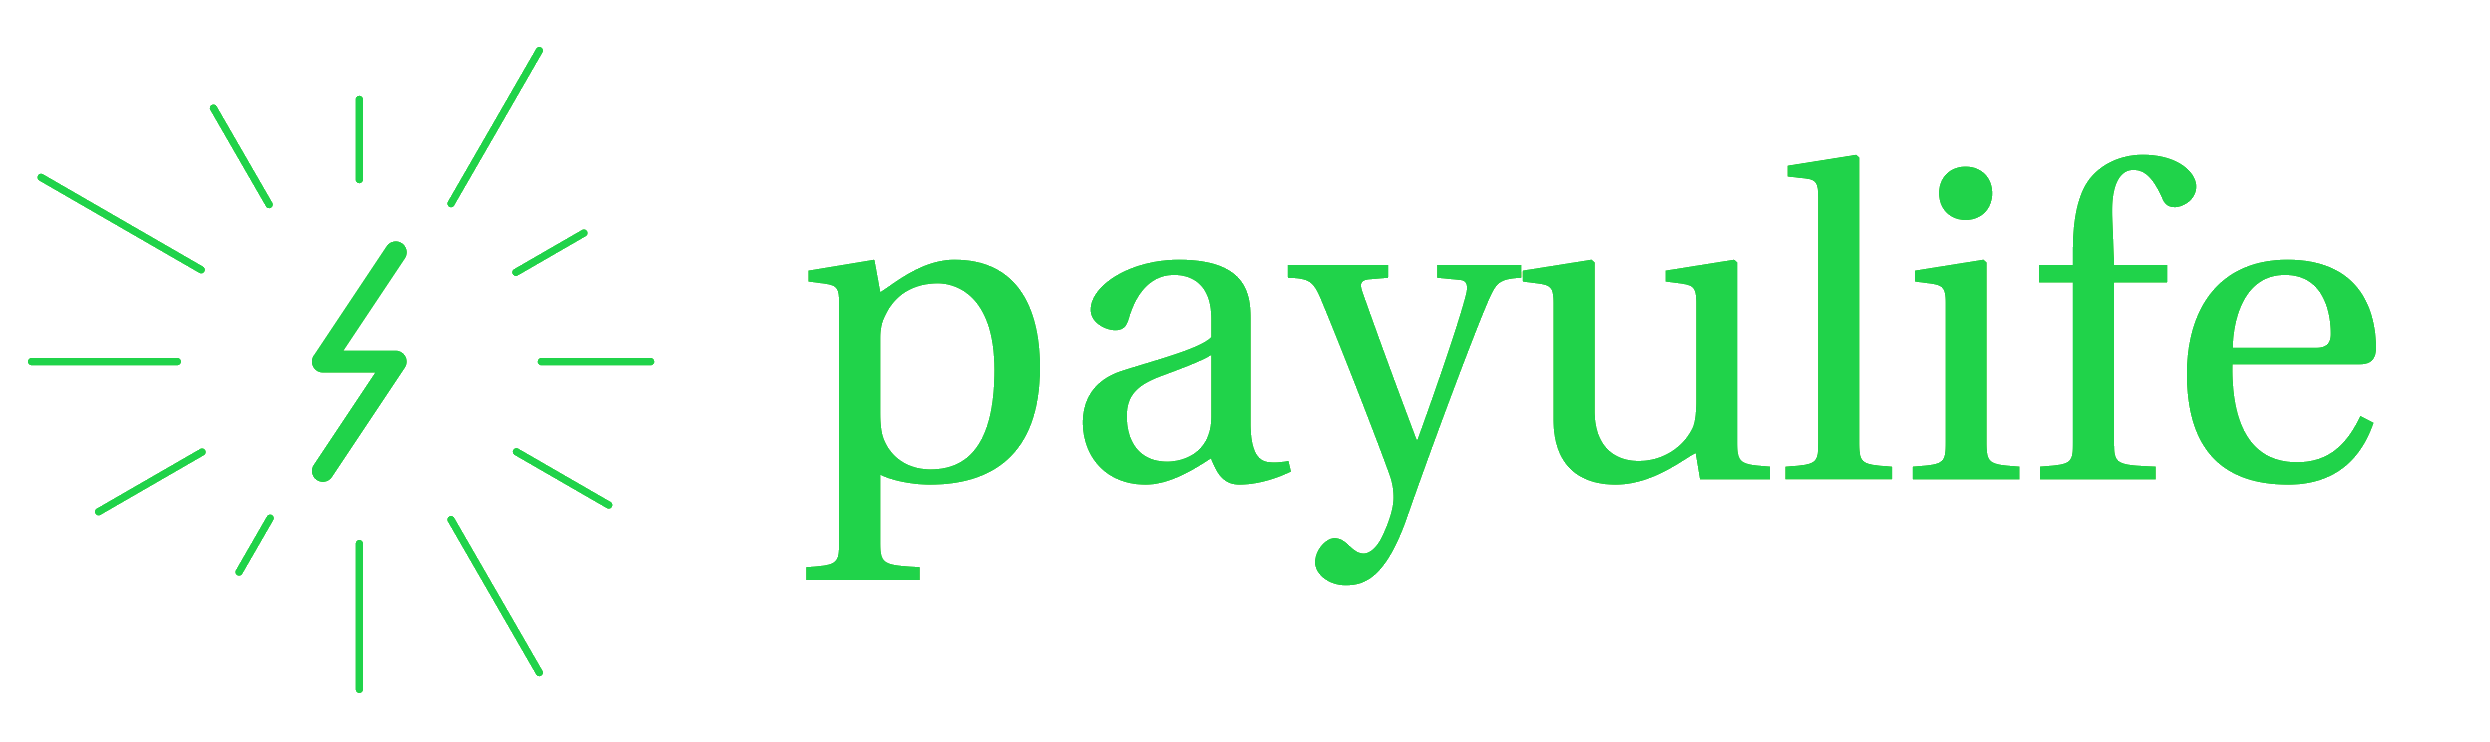 Payulife Retail Service